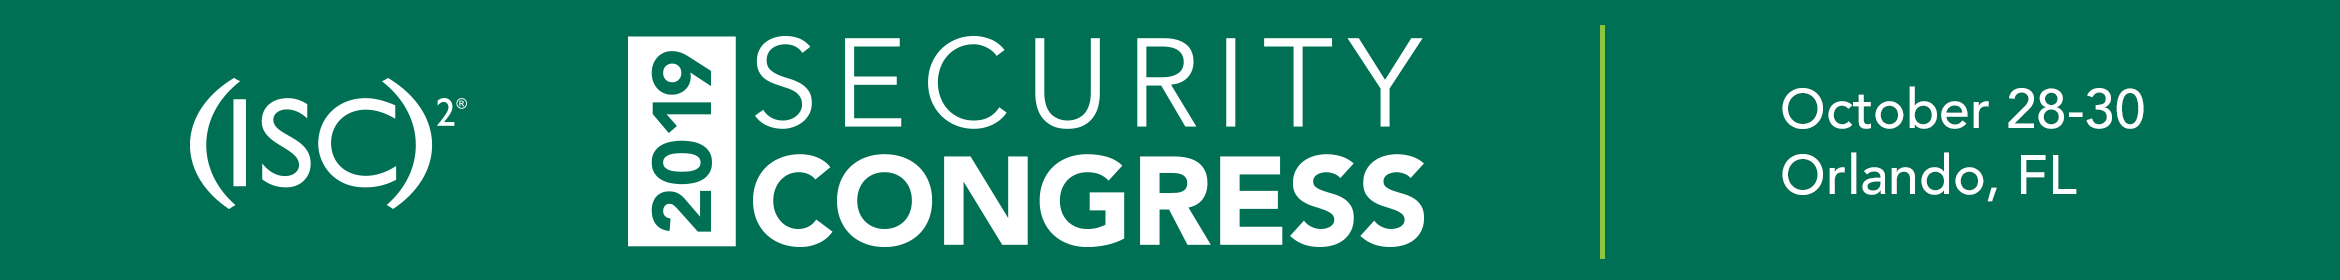 (ISC)² 2019 Security Congress Main banner